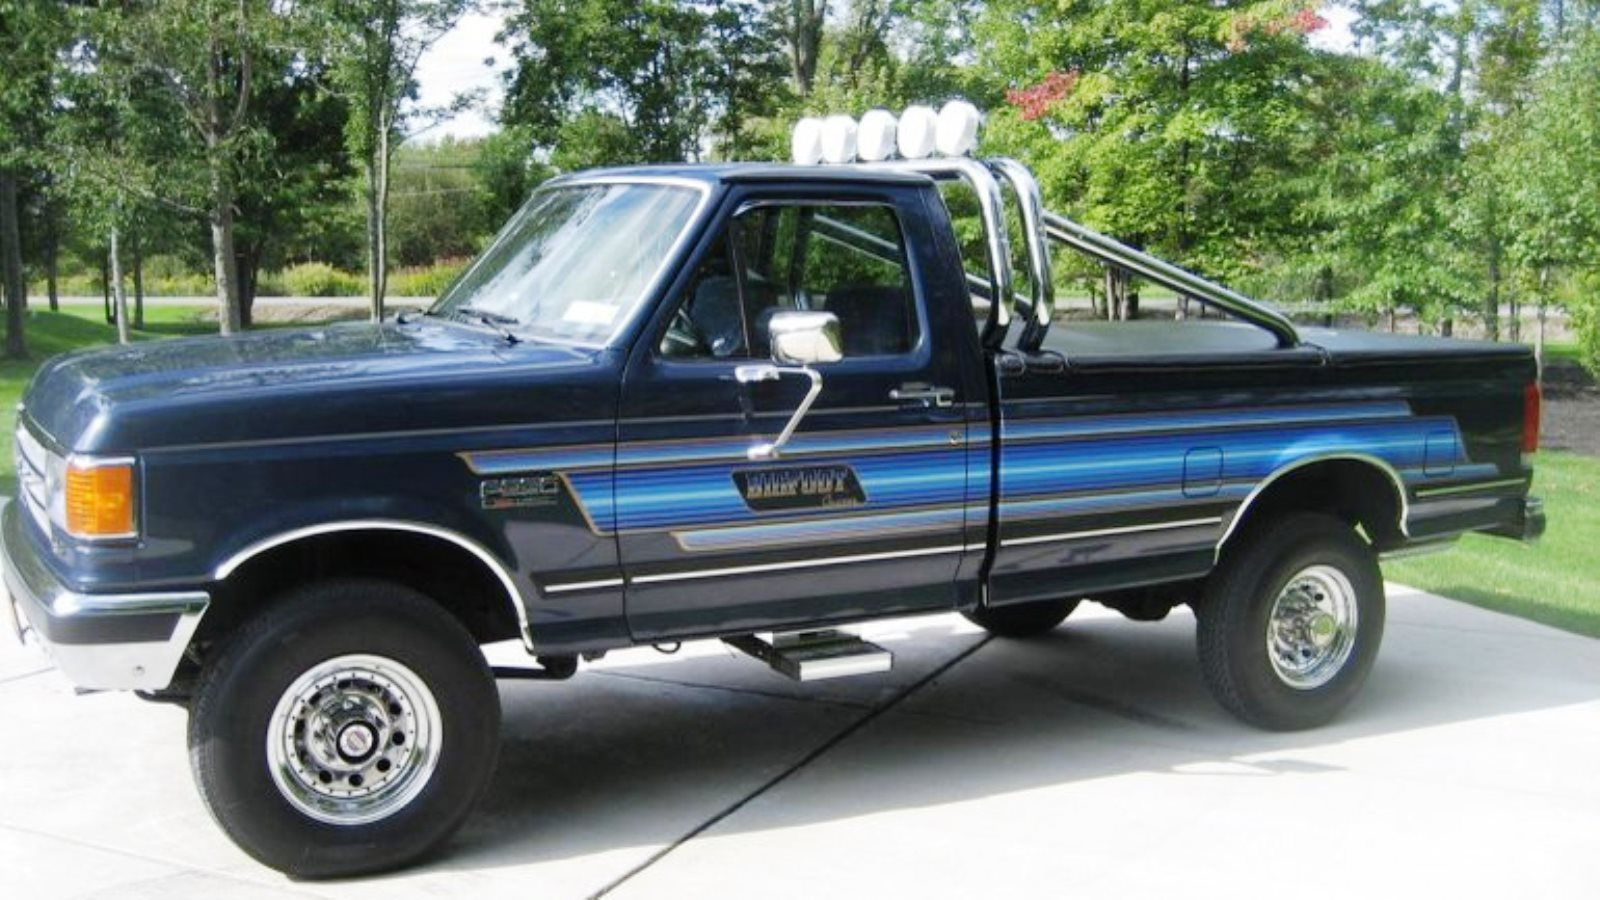 7. 1987 Ford F-150 Bigfoot Cruiser